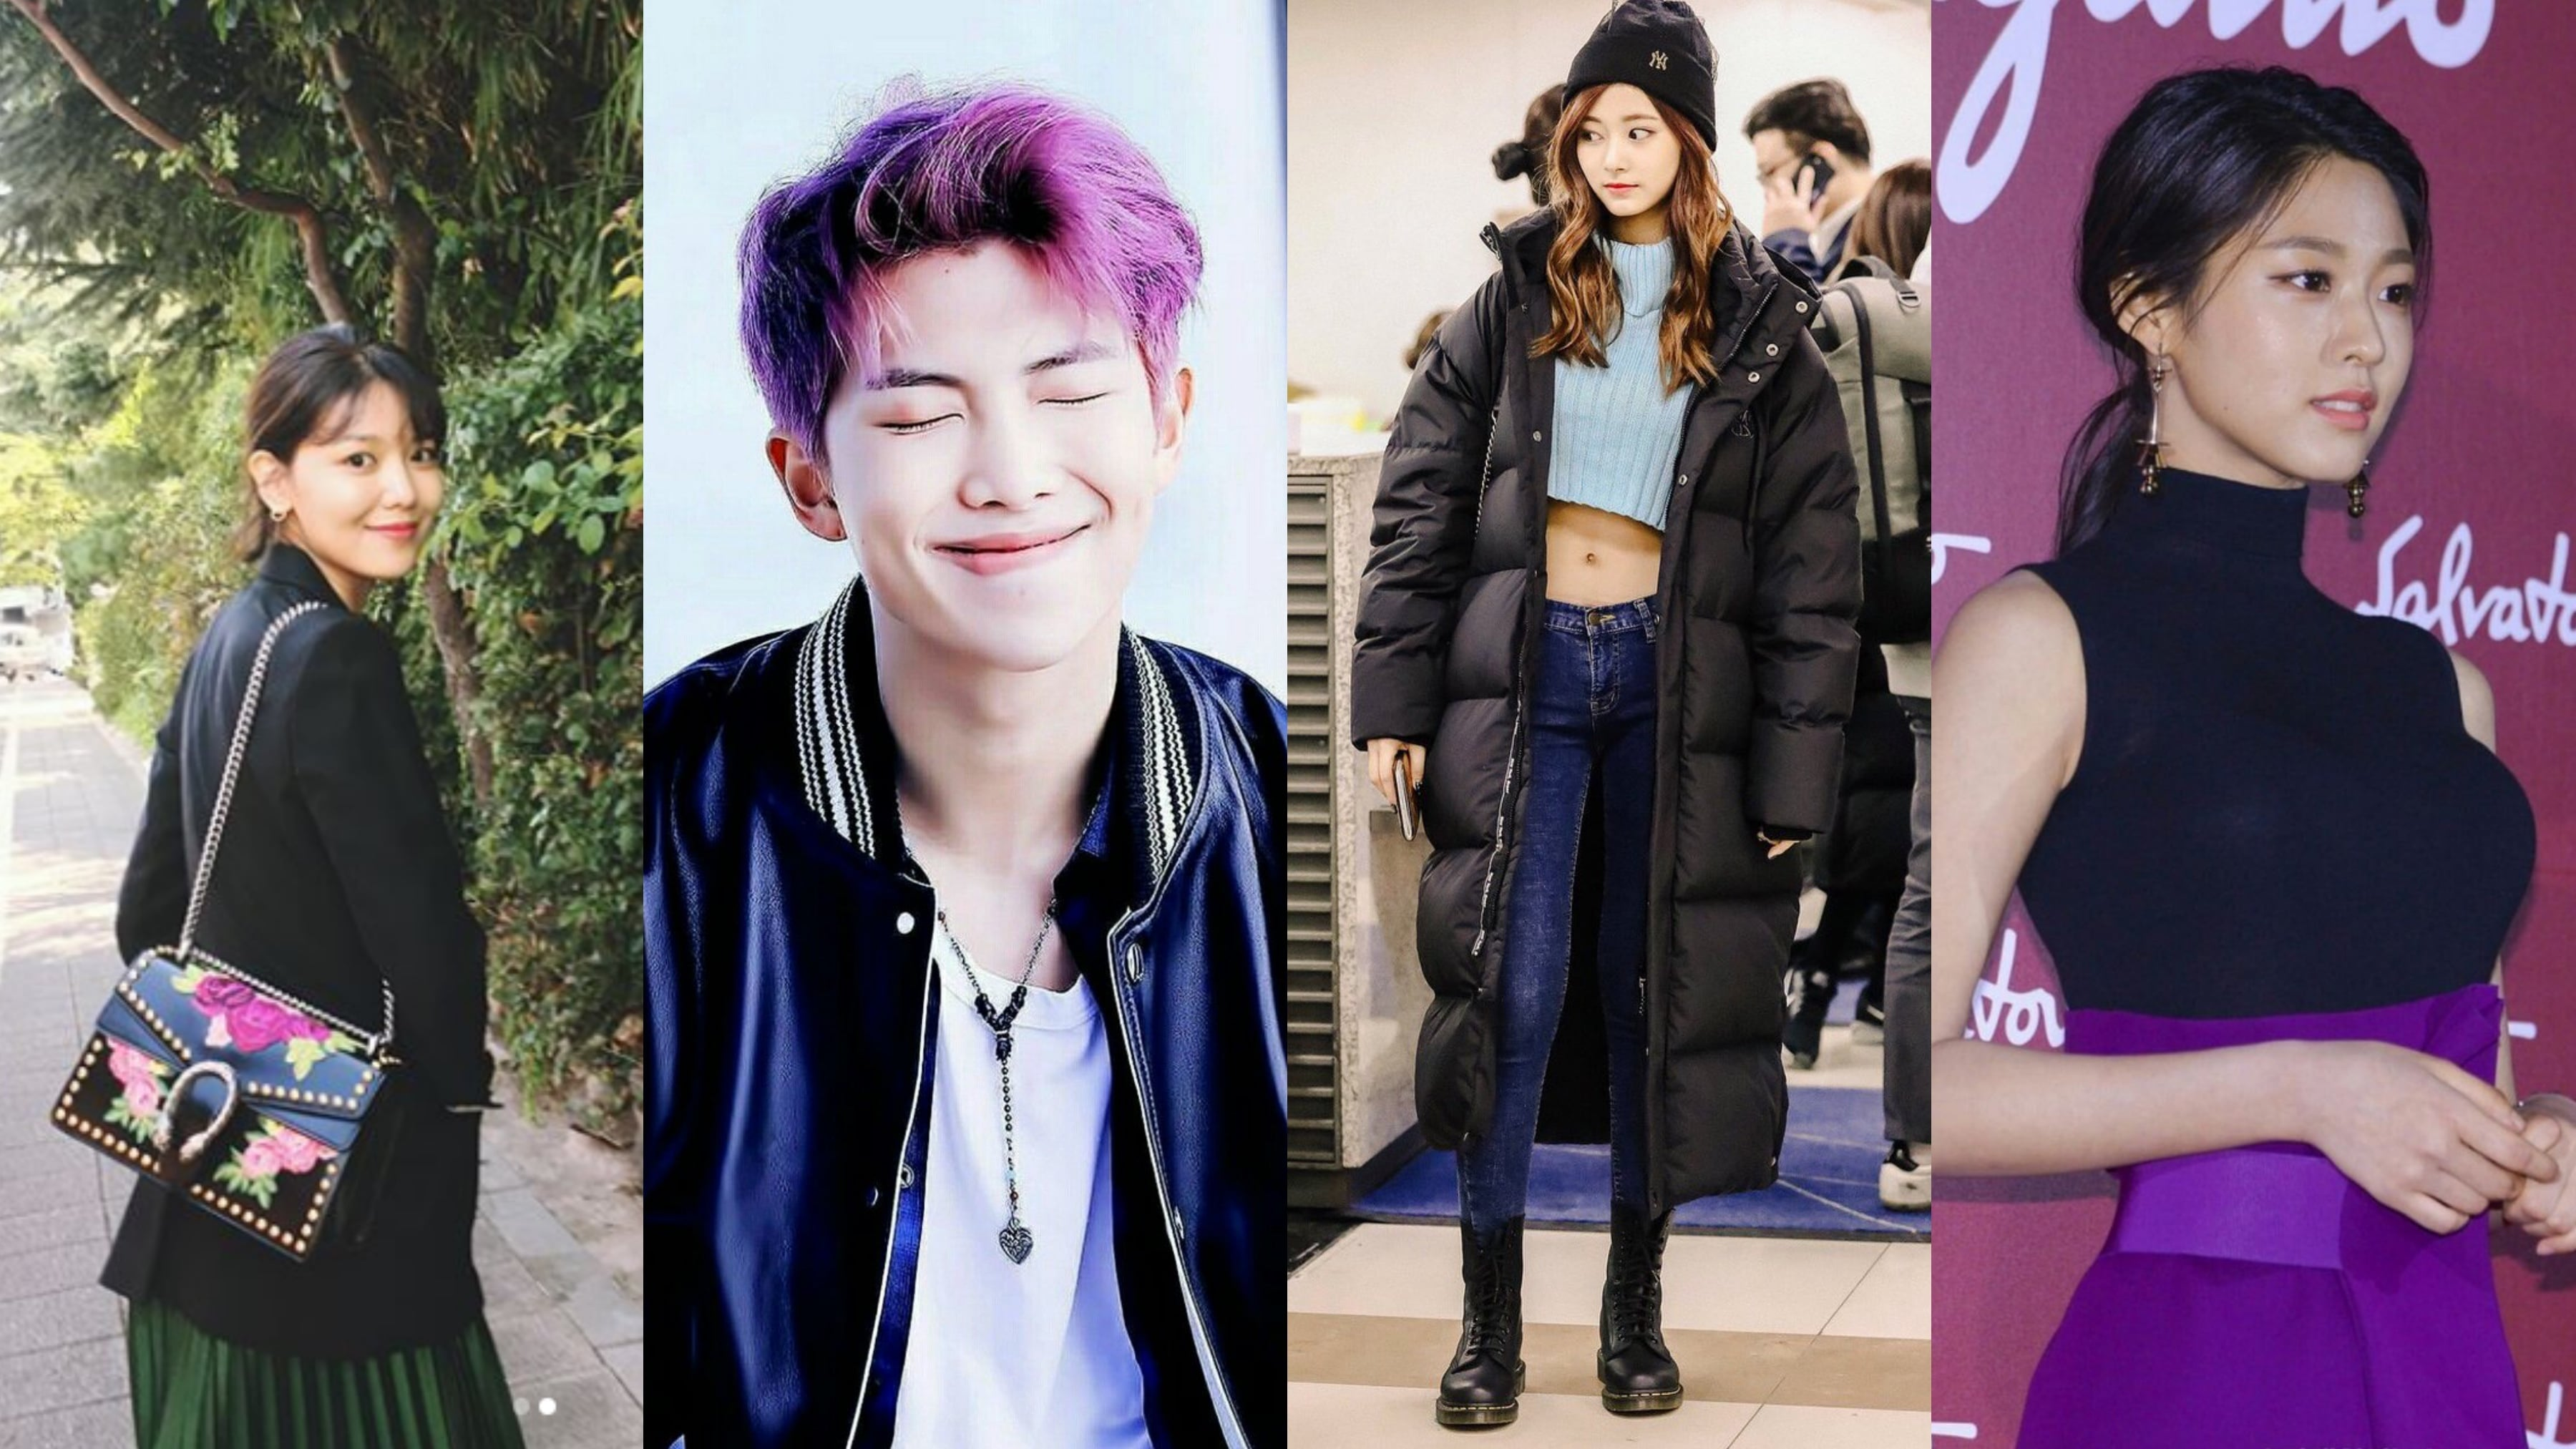 10 Korean Fashion Style Ideas To Refresh Your Look And Wardrobe In 2018